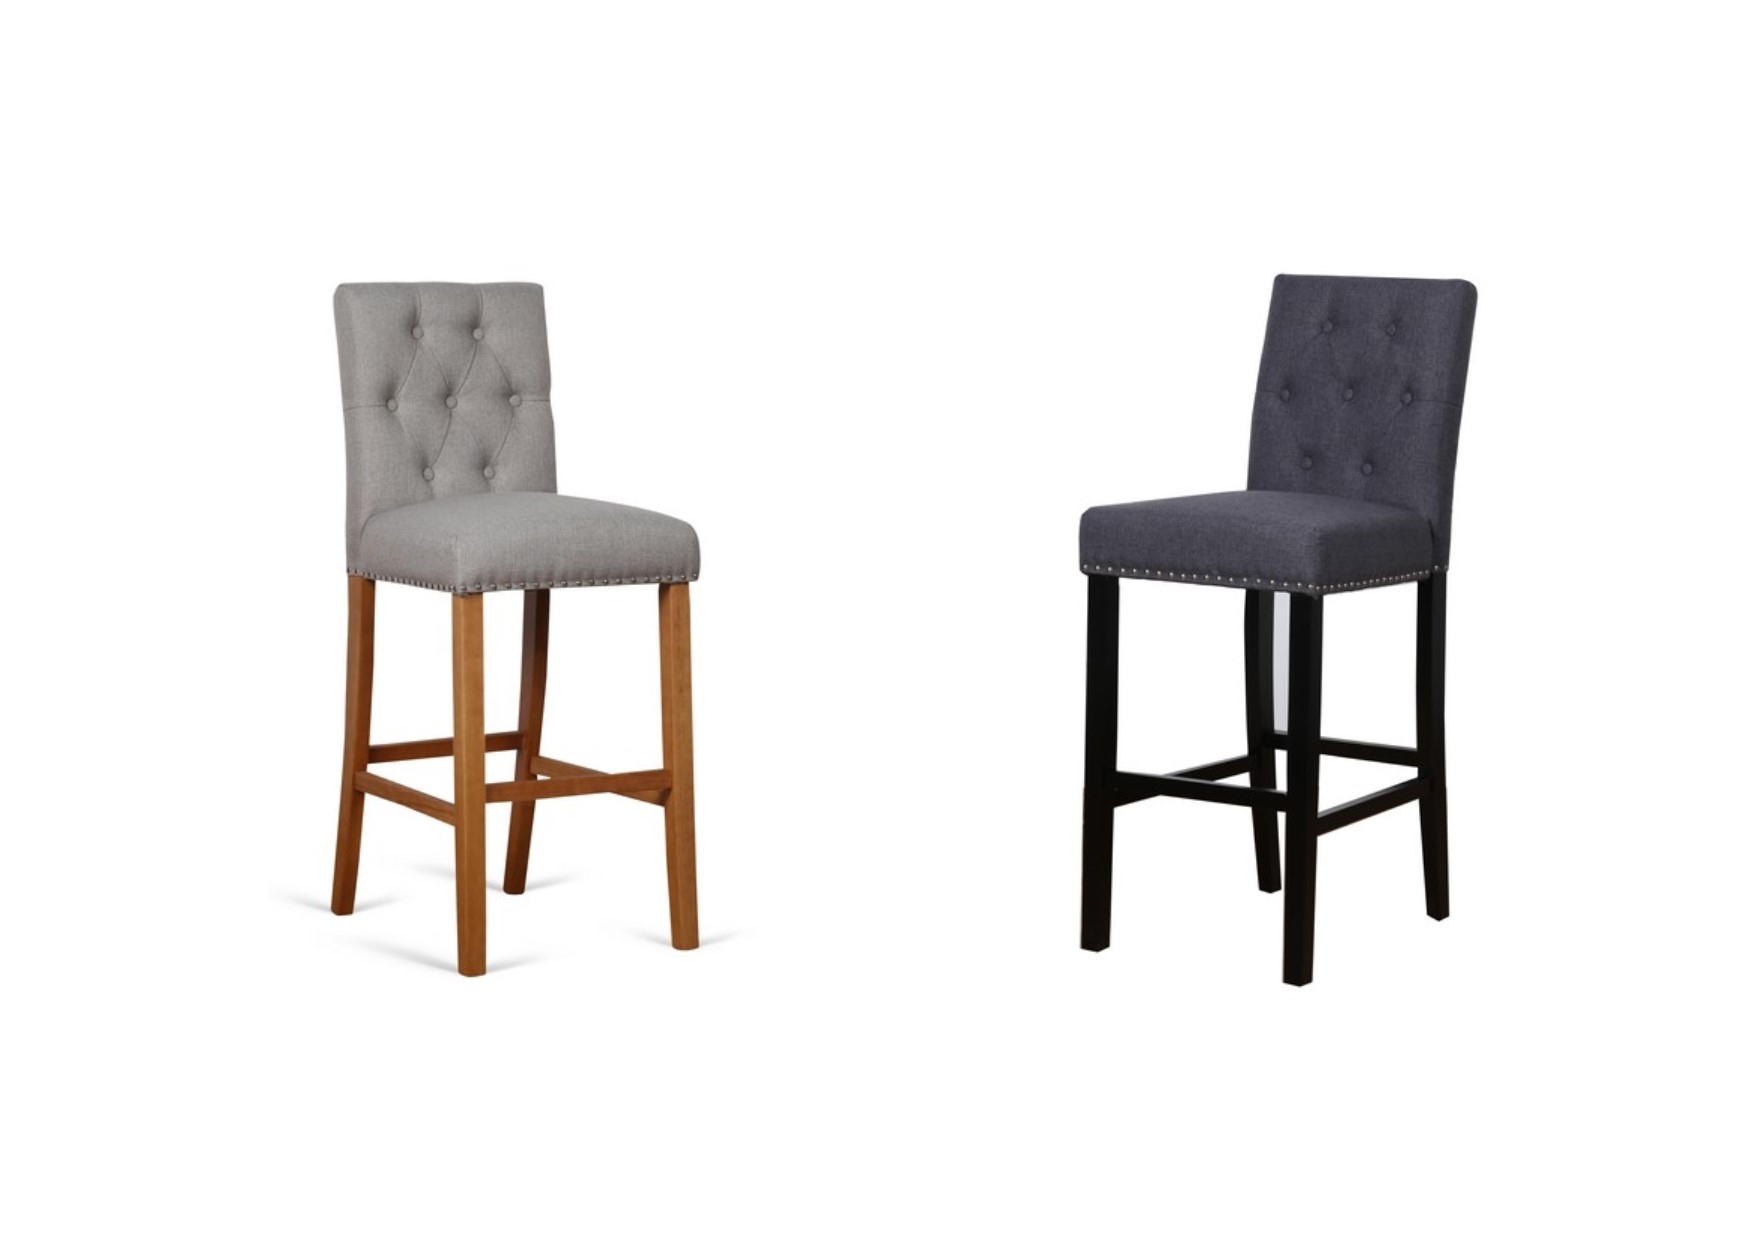 2 X Birlea Hudson High Back Metal Studded Fabric Bar Stools Wheat Or Grey